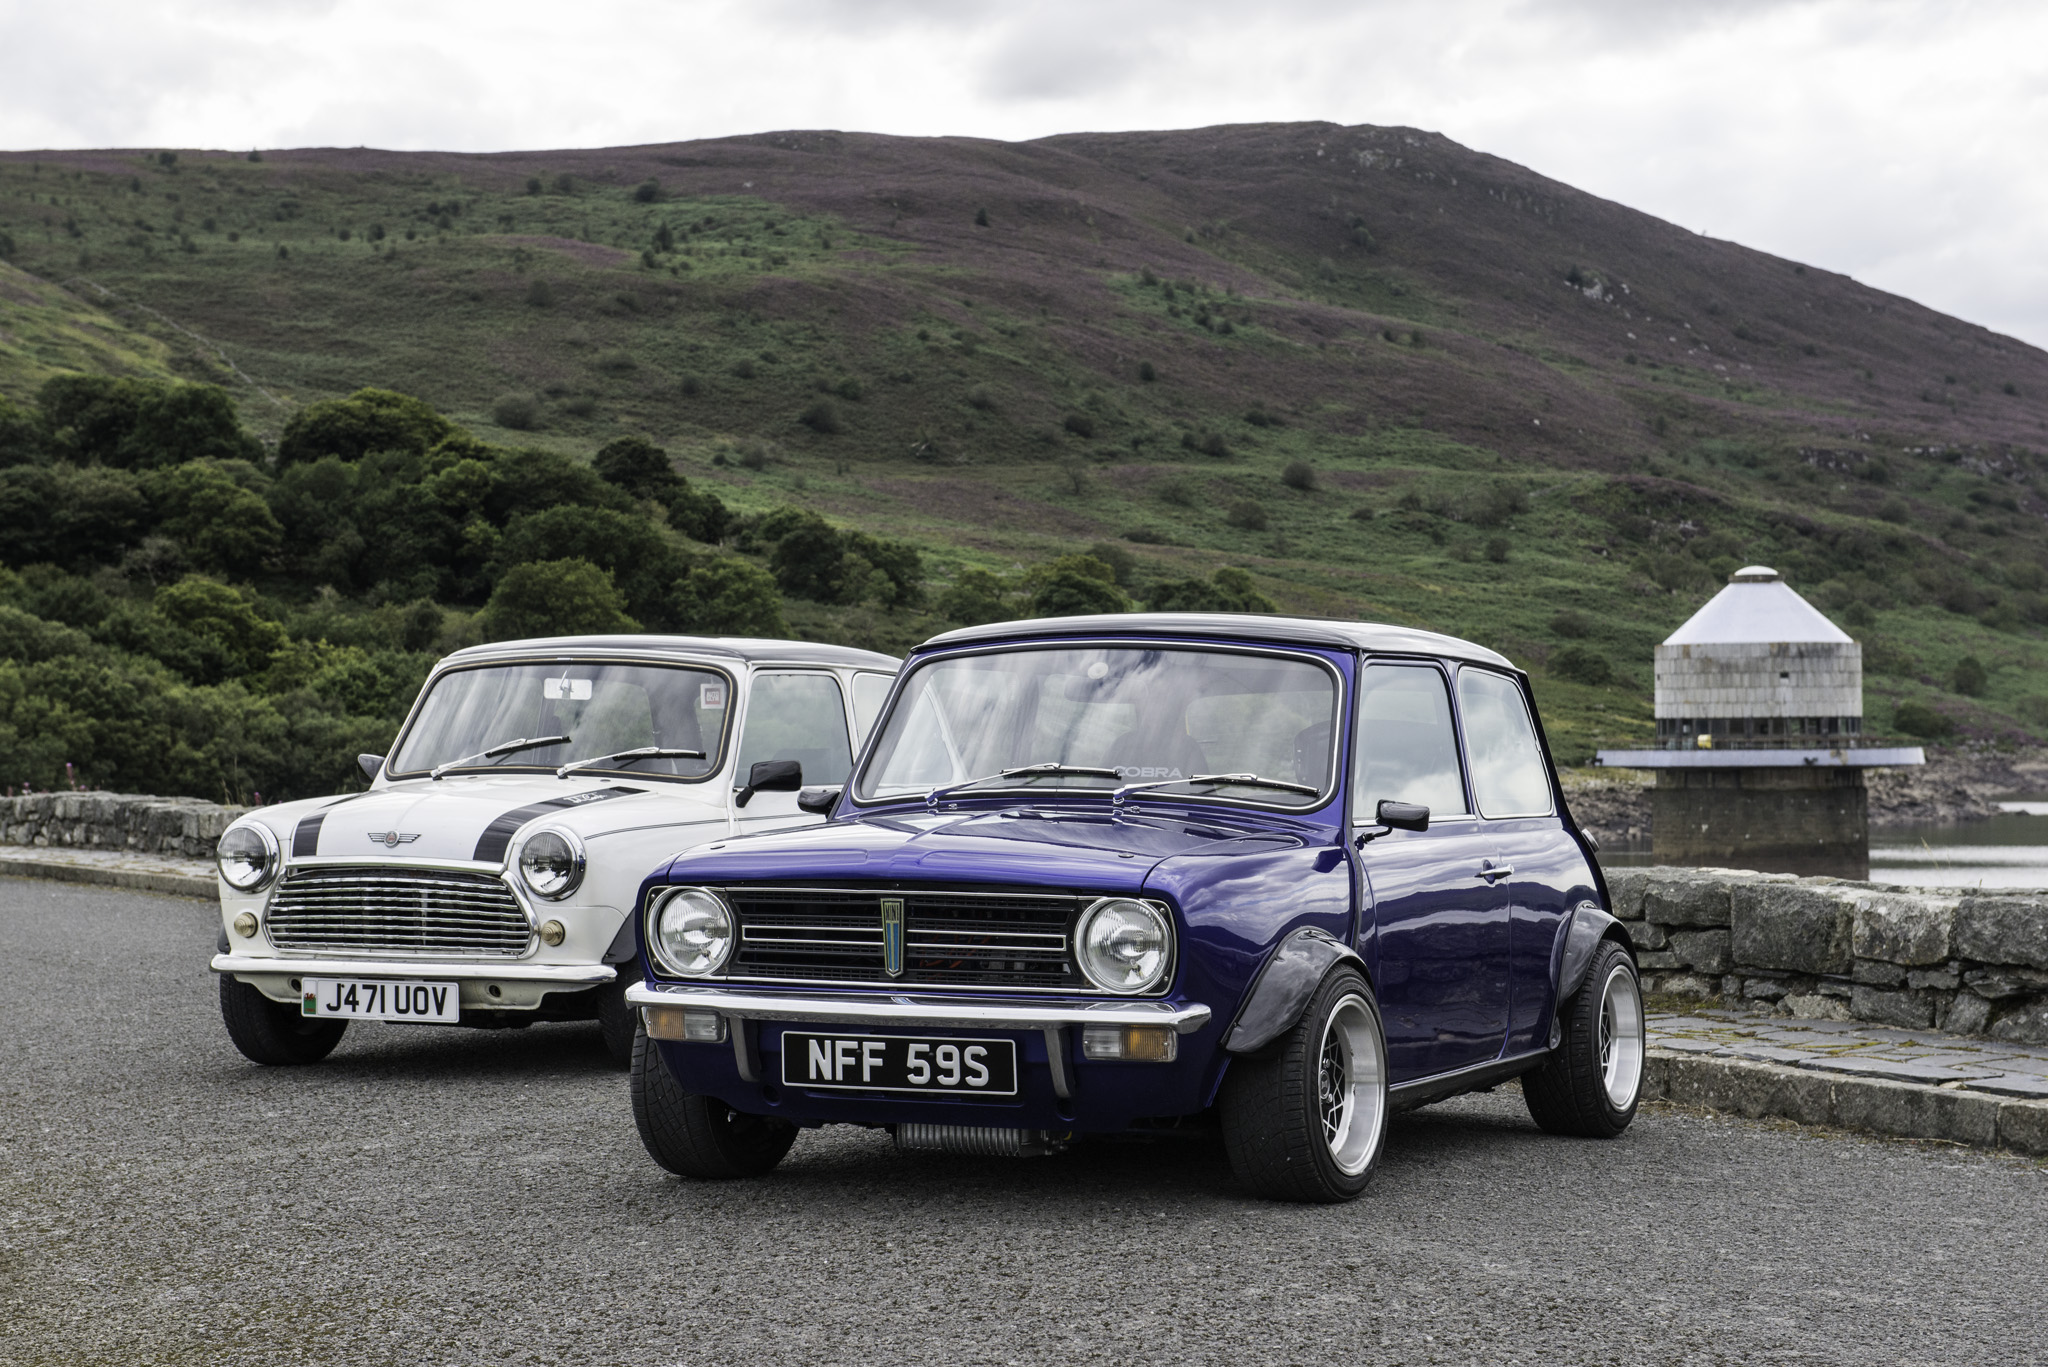 1992 ROVER MINI COOPER & 1977 LEYLAND MINI CLUBMAN  |  OWNER   - SAM EDWARDS  |  LOCATION   - LLYN CELYN